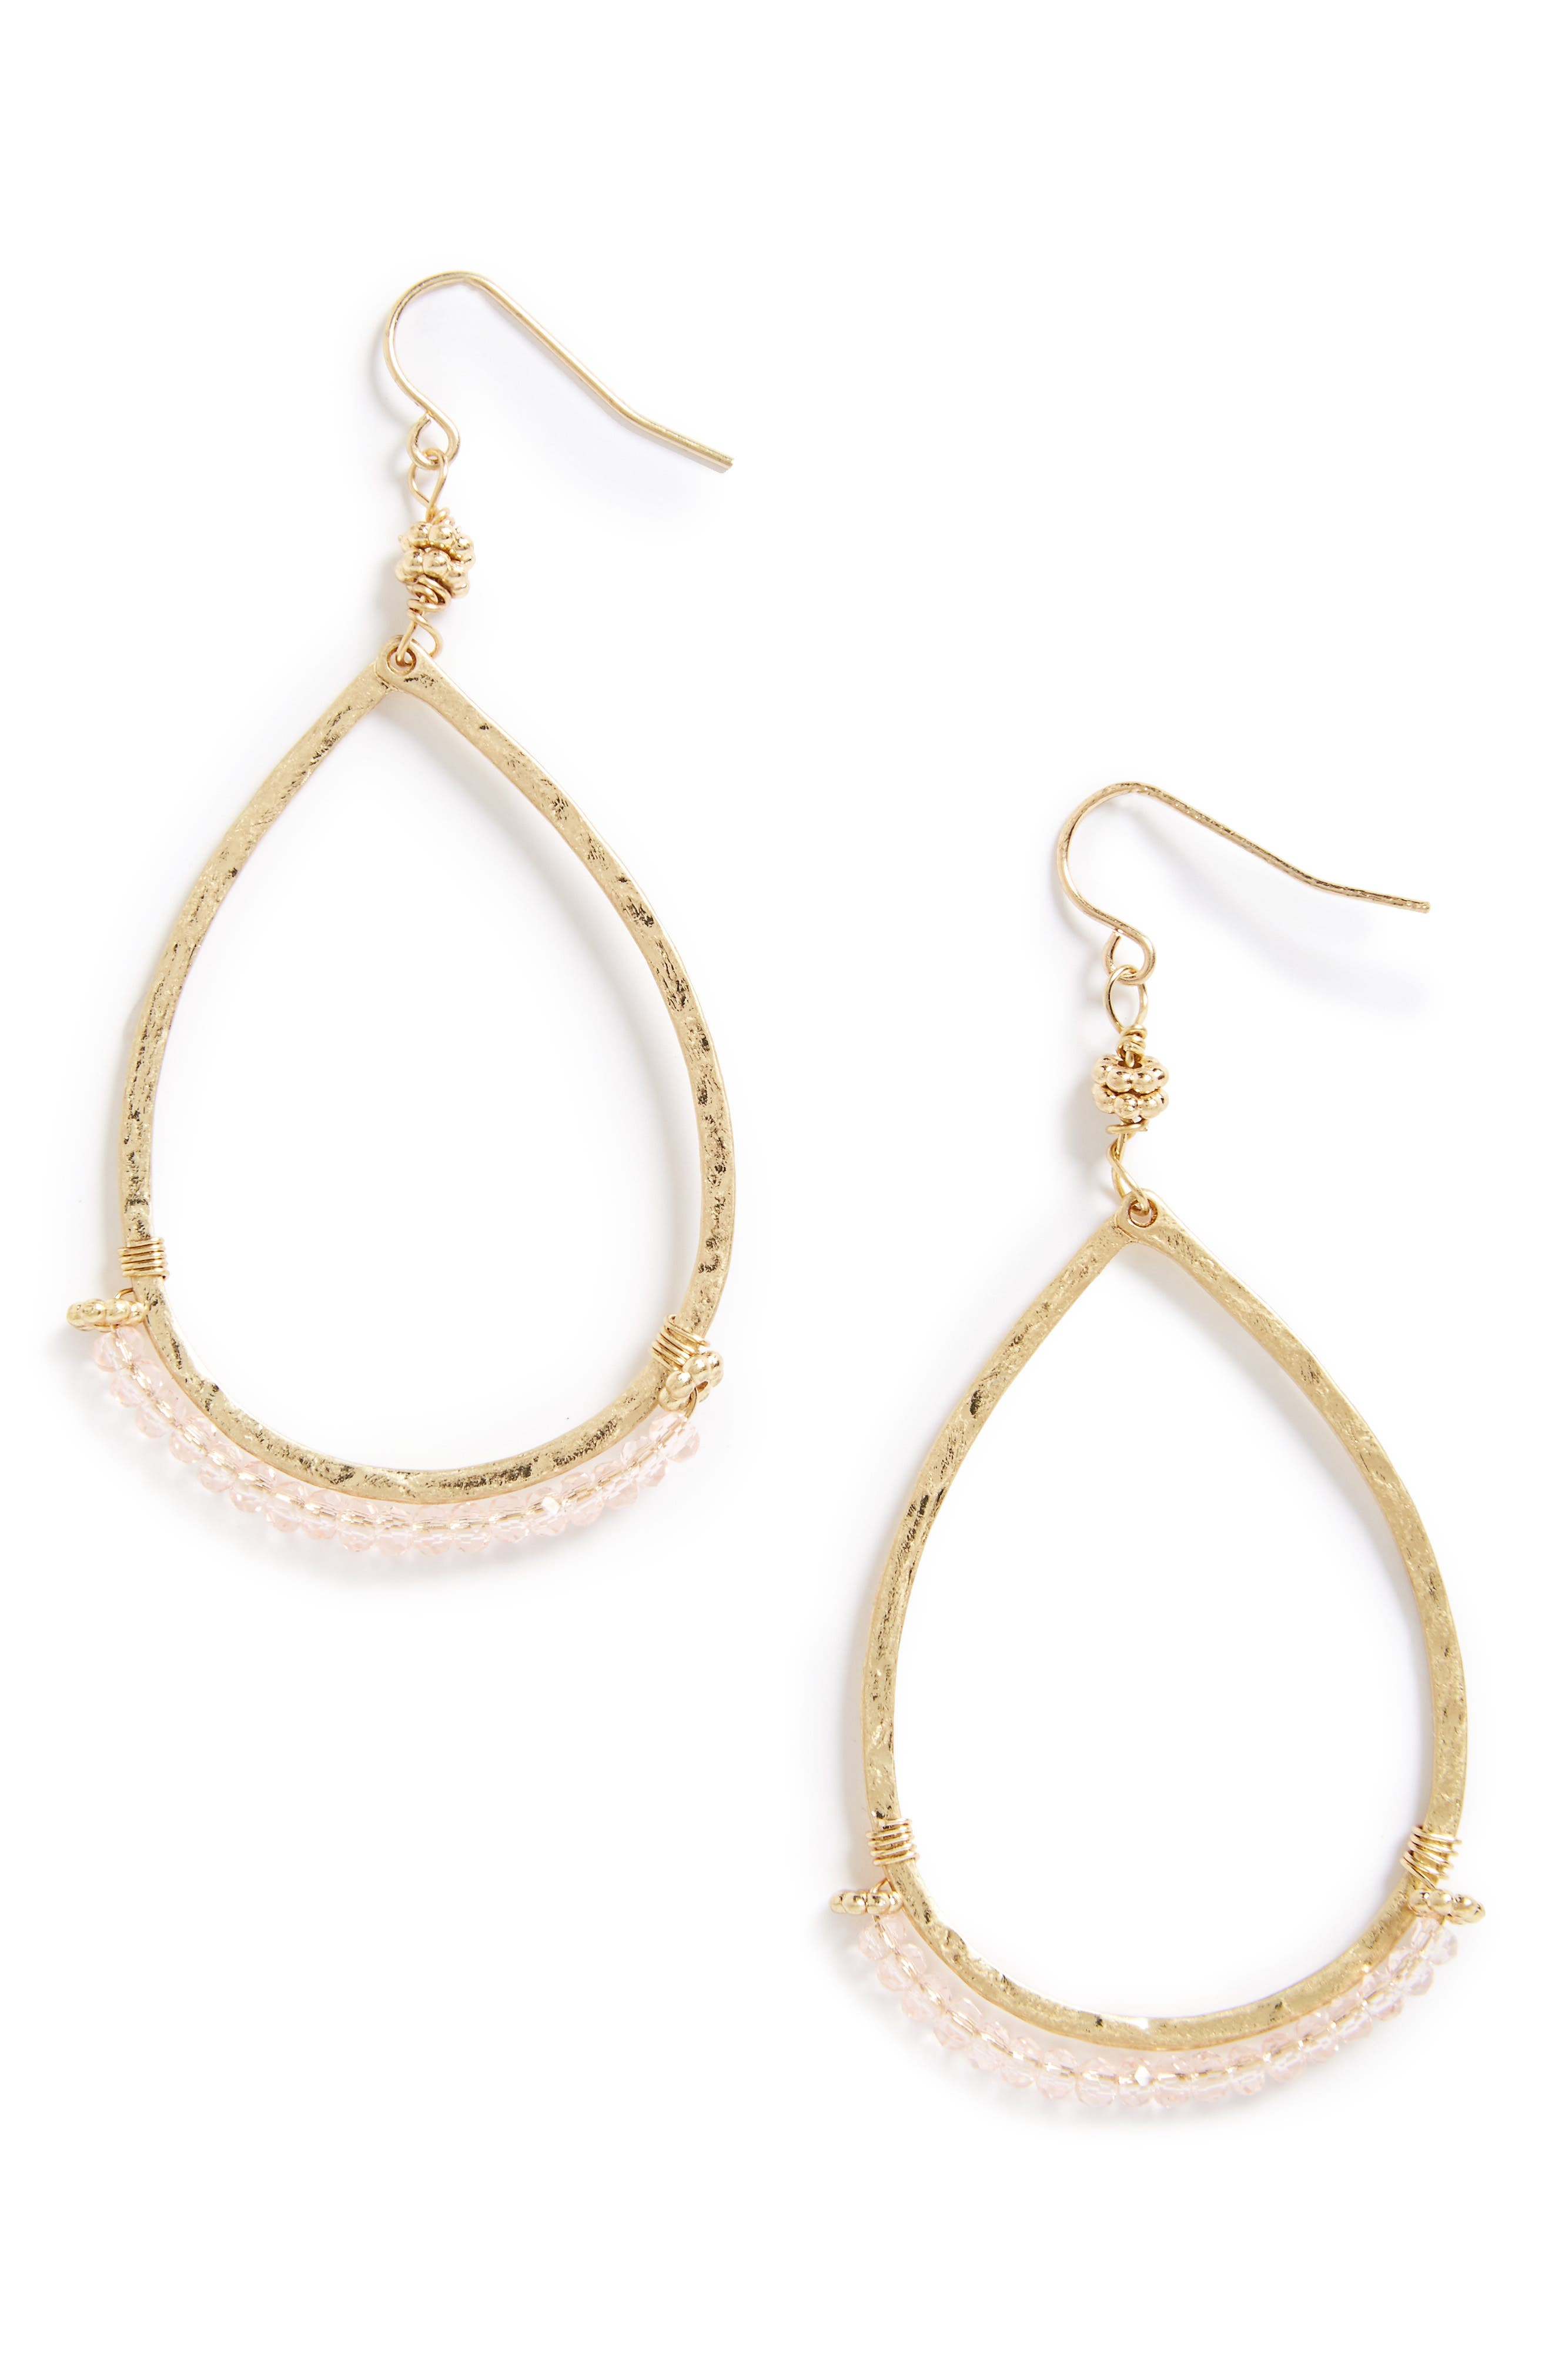 Beaded Teardrop Earrings,                         Main,                         color, Worn Gold/ Platinum Glass